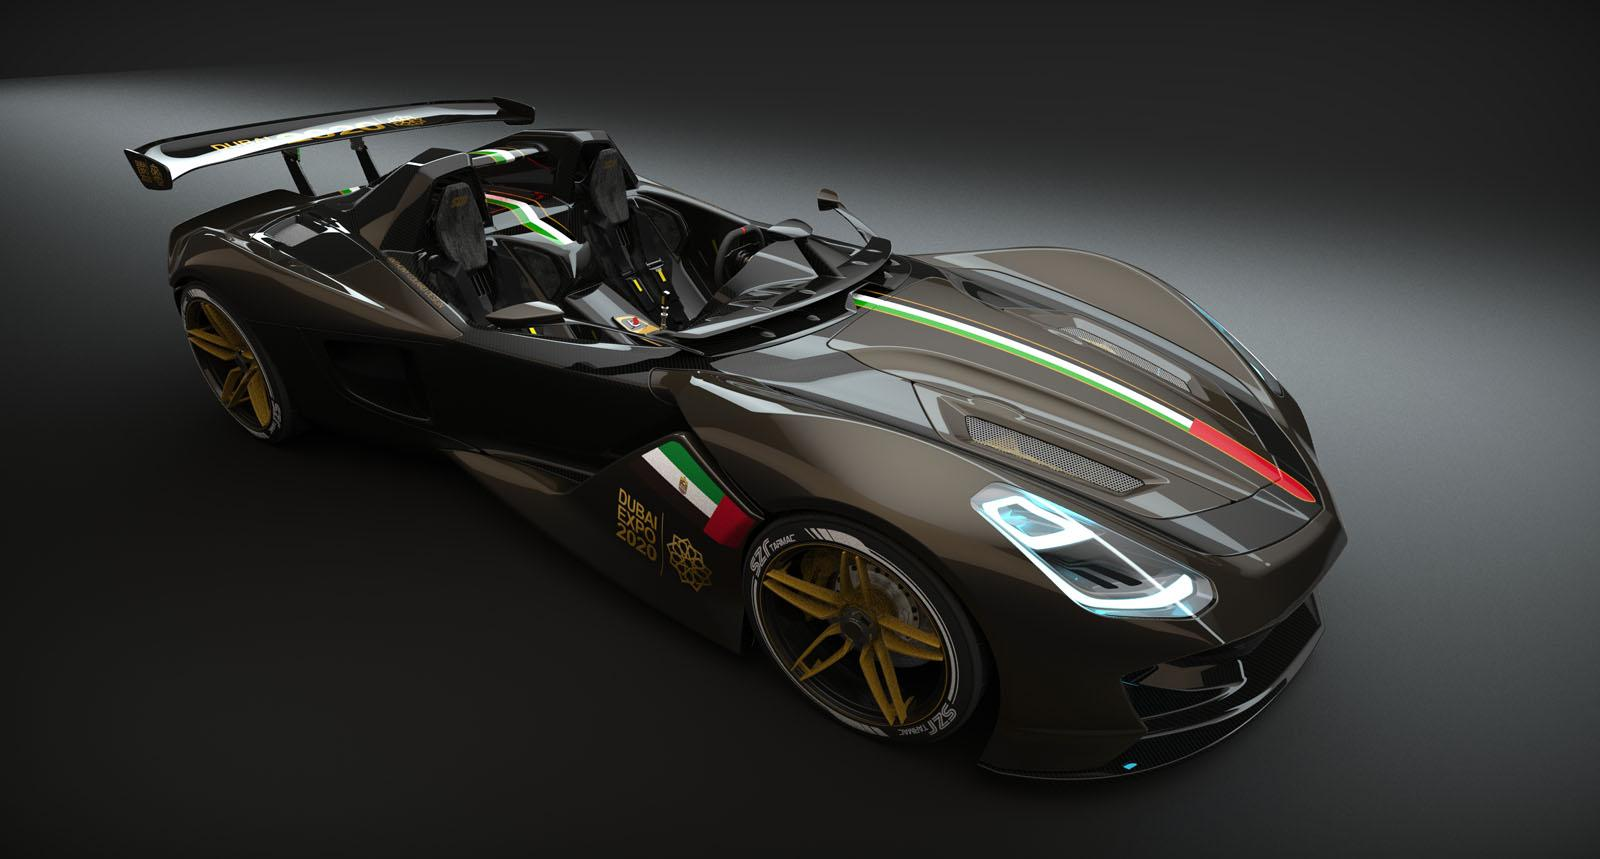 Dubai Roadster Sports Car Imagined - GTspirit